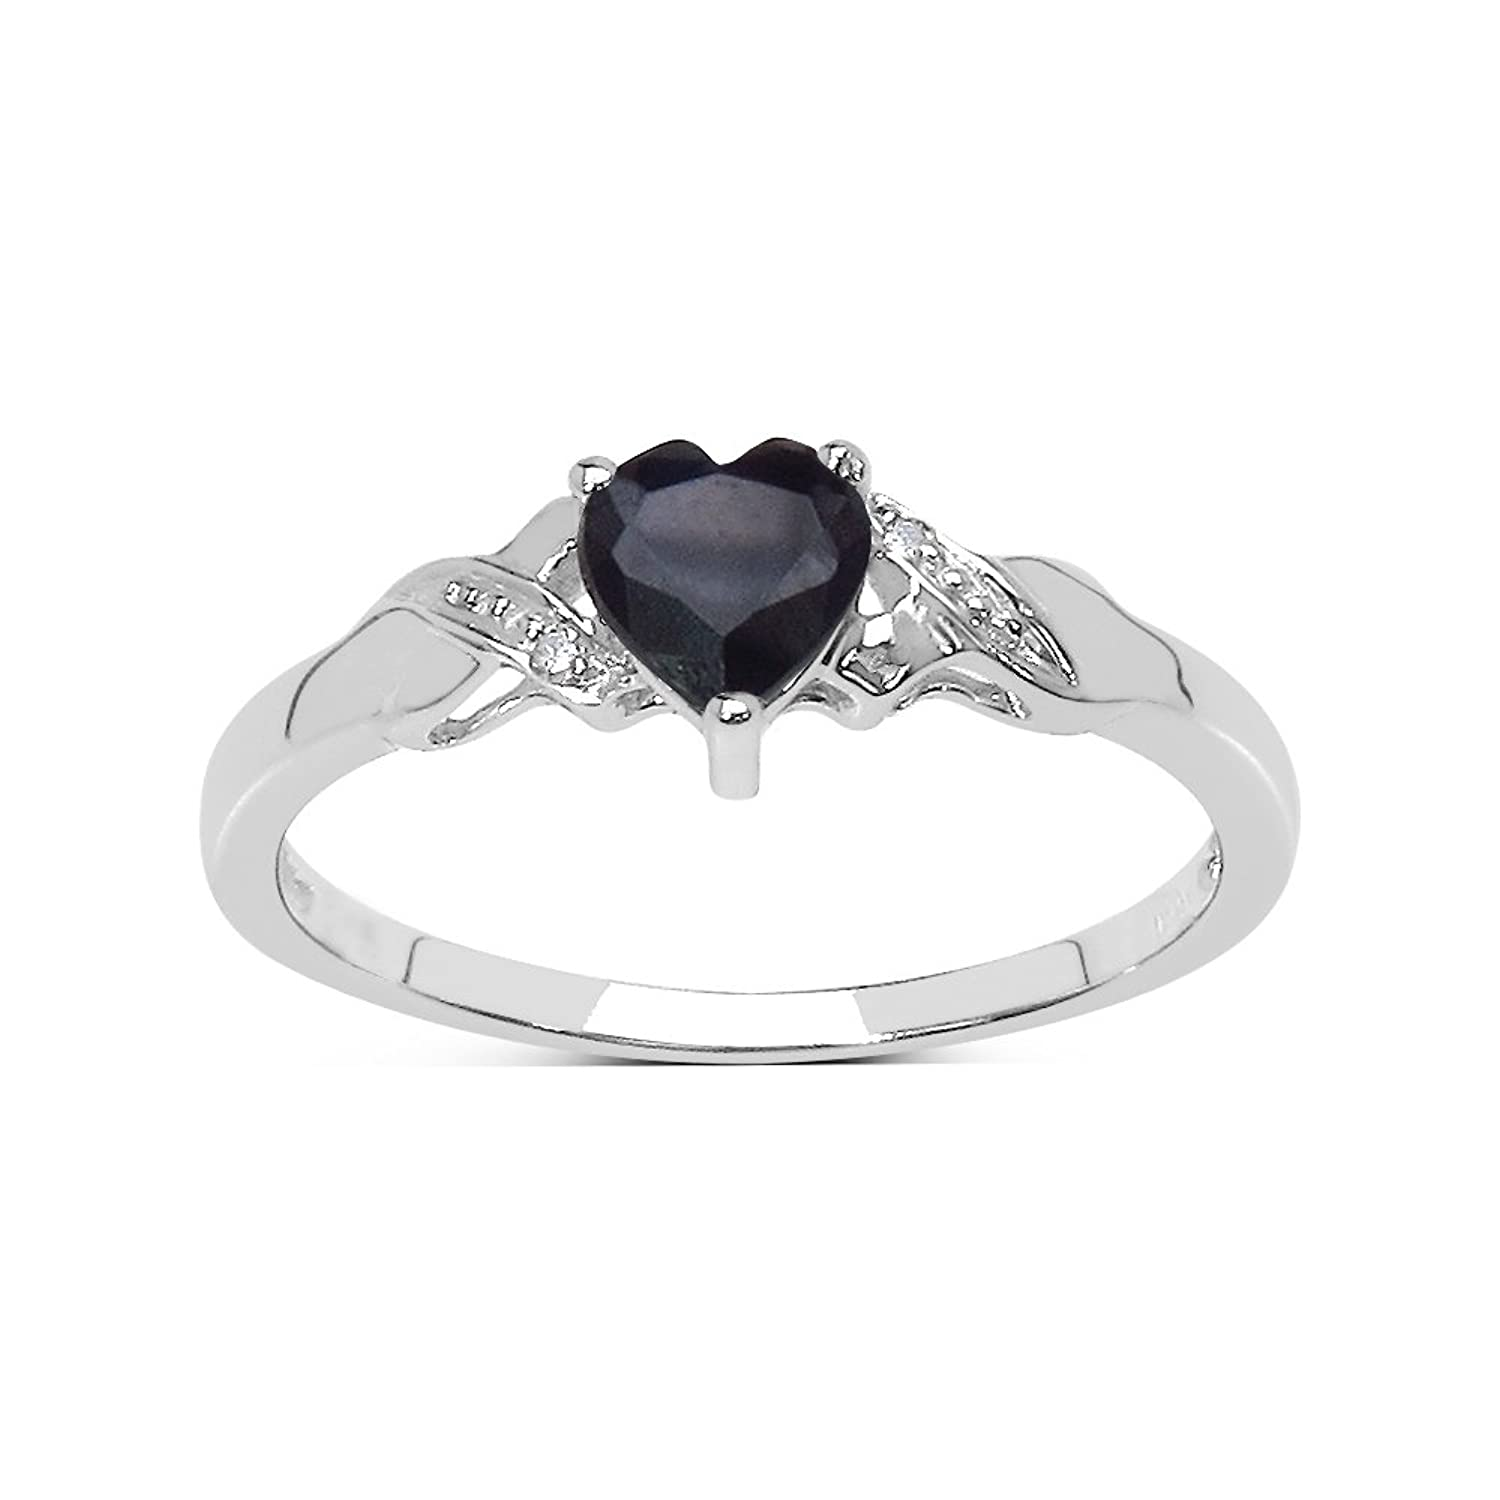 The Sapphire Ring Collection Beautiful Sterling Silver Heart